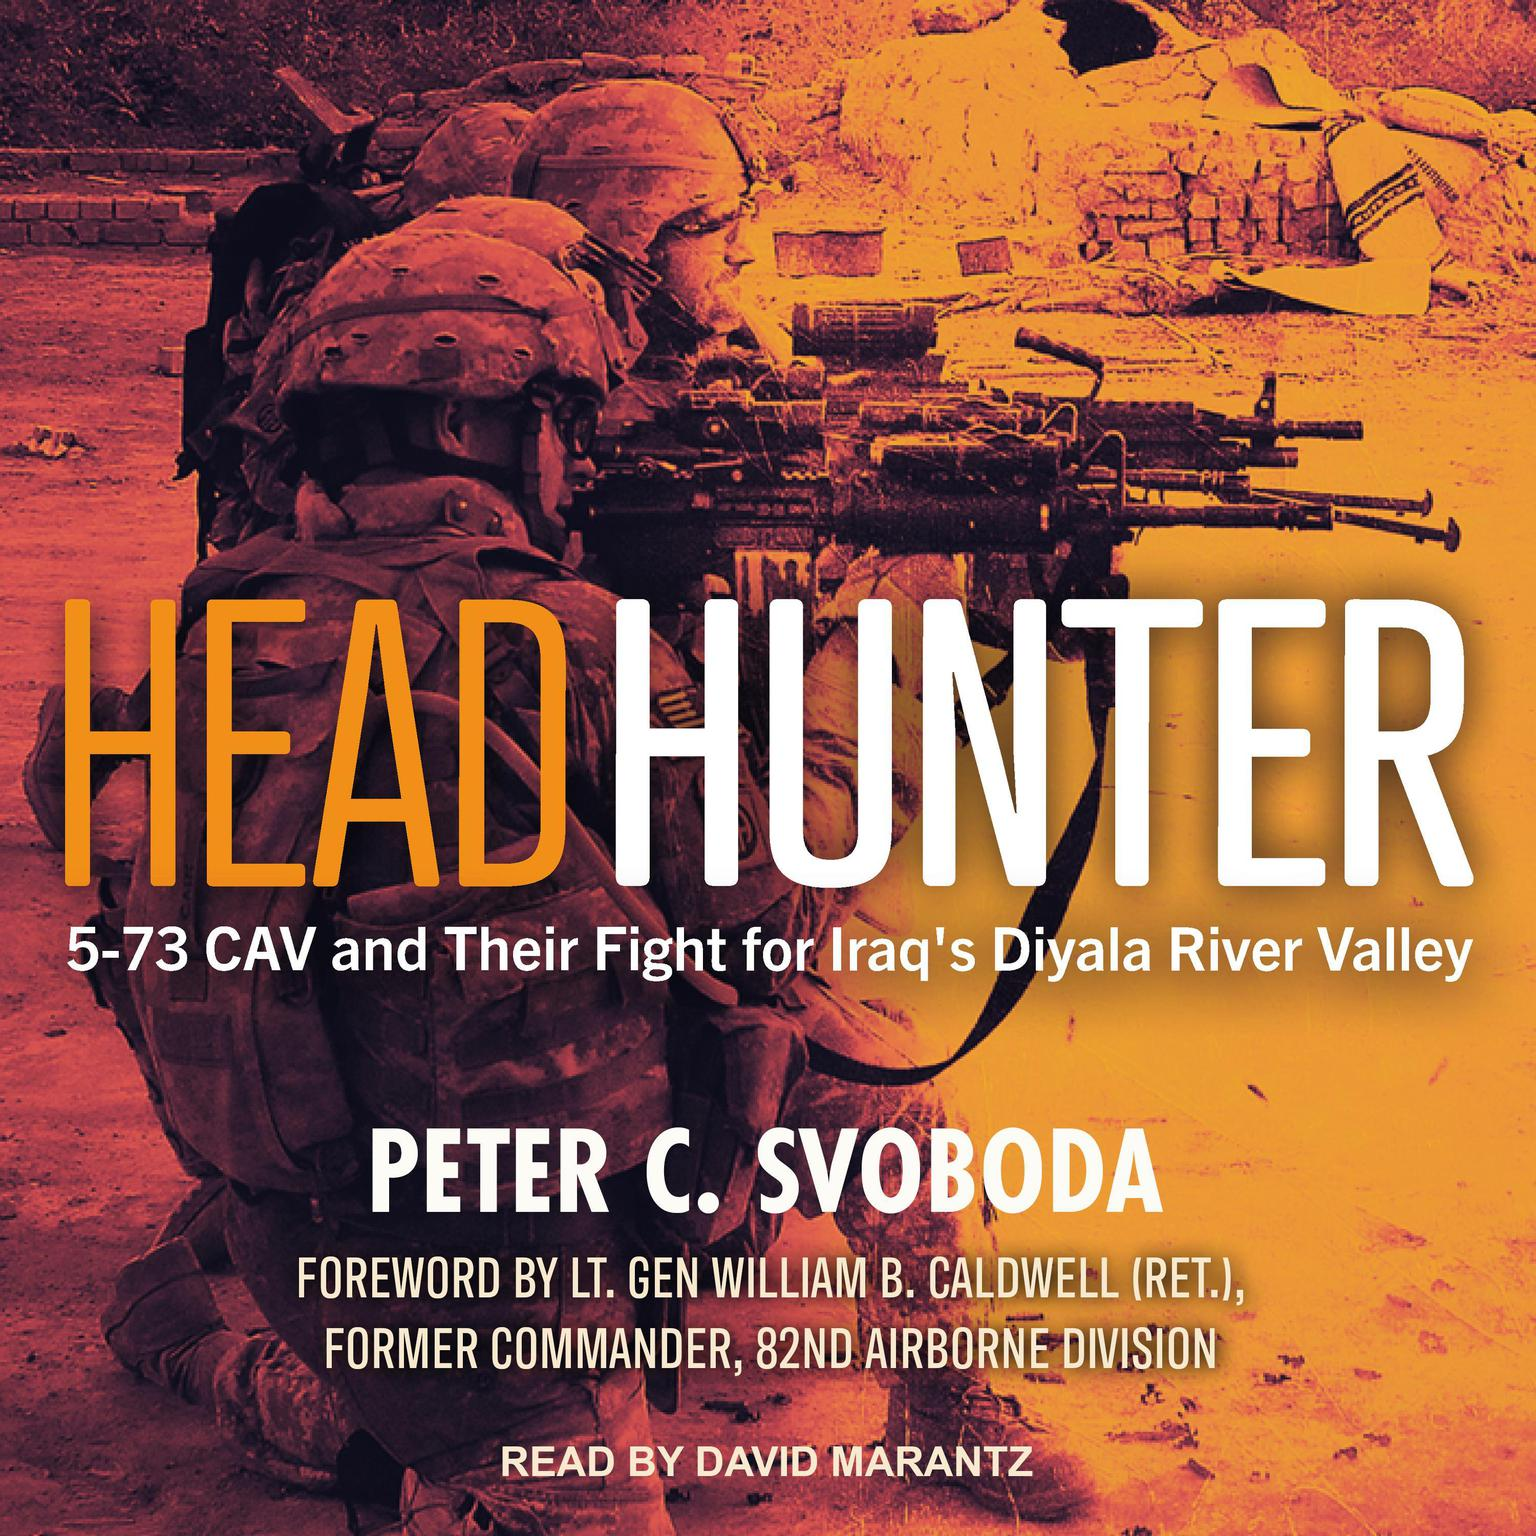 Headhunter: 5-73 CAV and Their Fight for Iraqs Diyala River Valley Audiobook, by Peter C. Svoboda